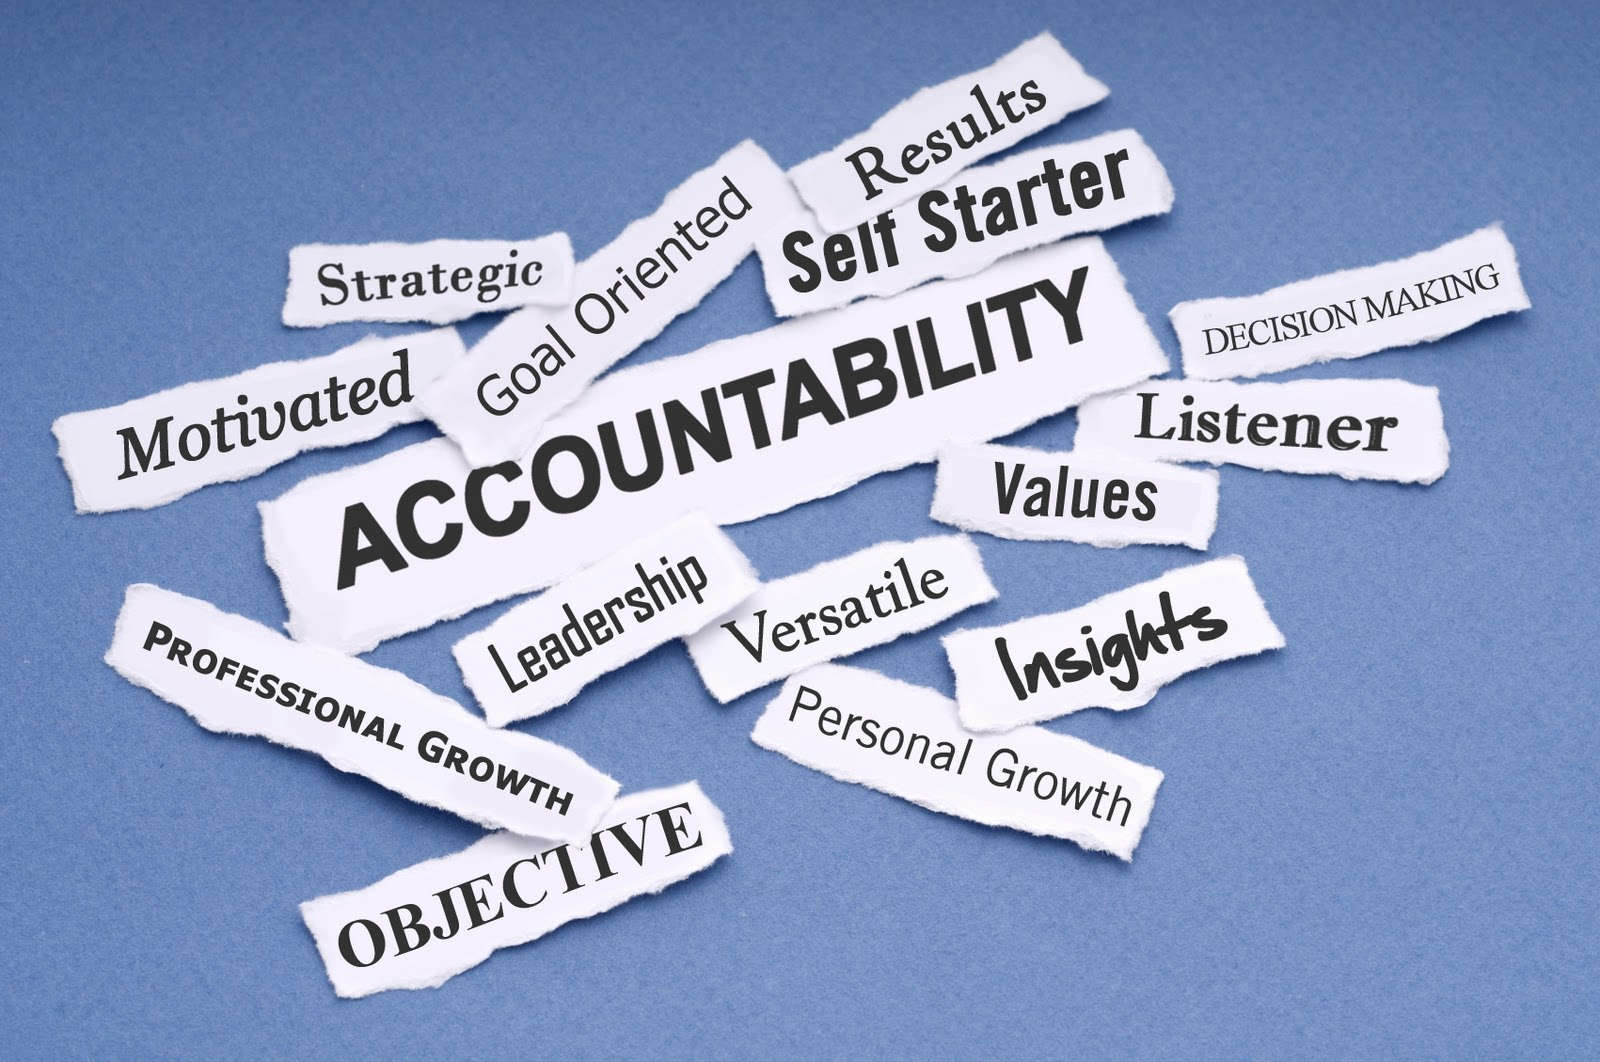 being a responsible business As a small business owner, you want to make a profit as a moral person, you want to contribute to positive change  your business can be the means of both doing well and doing good and can help establish your business as one that is ethically responsible.